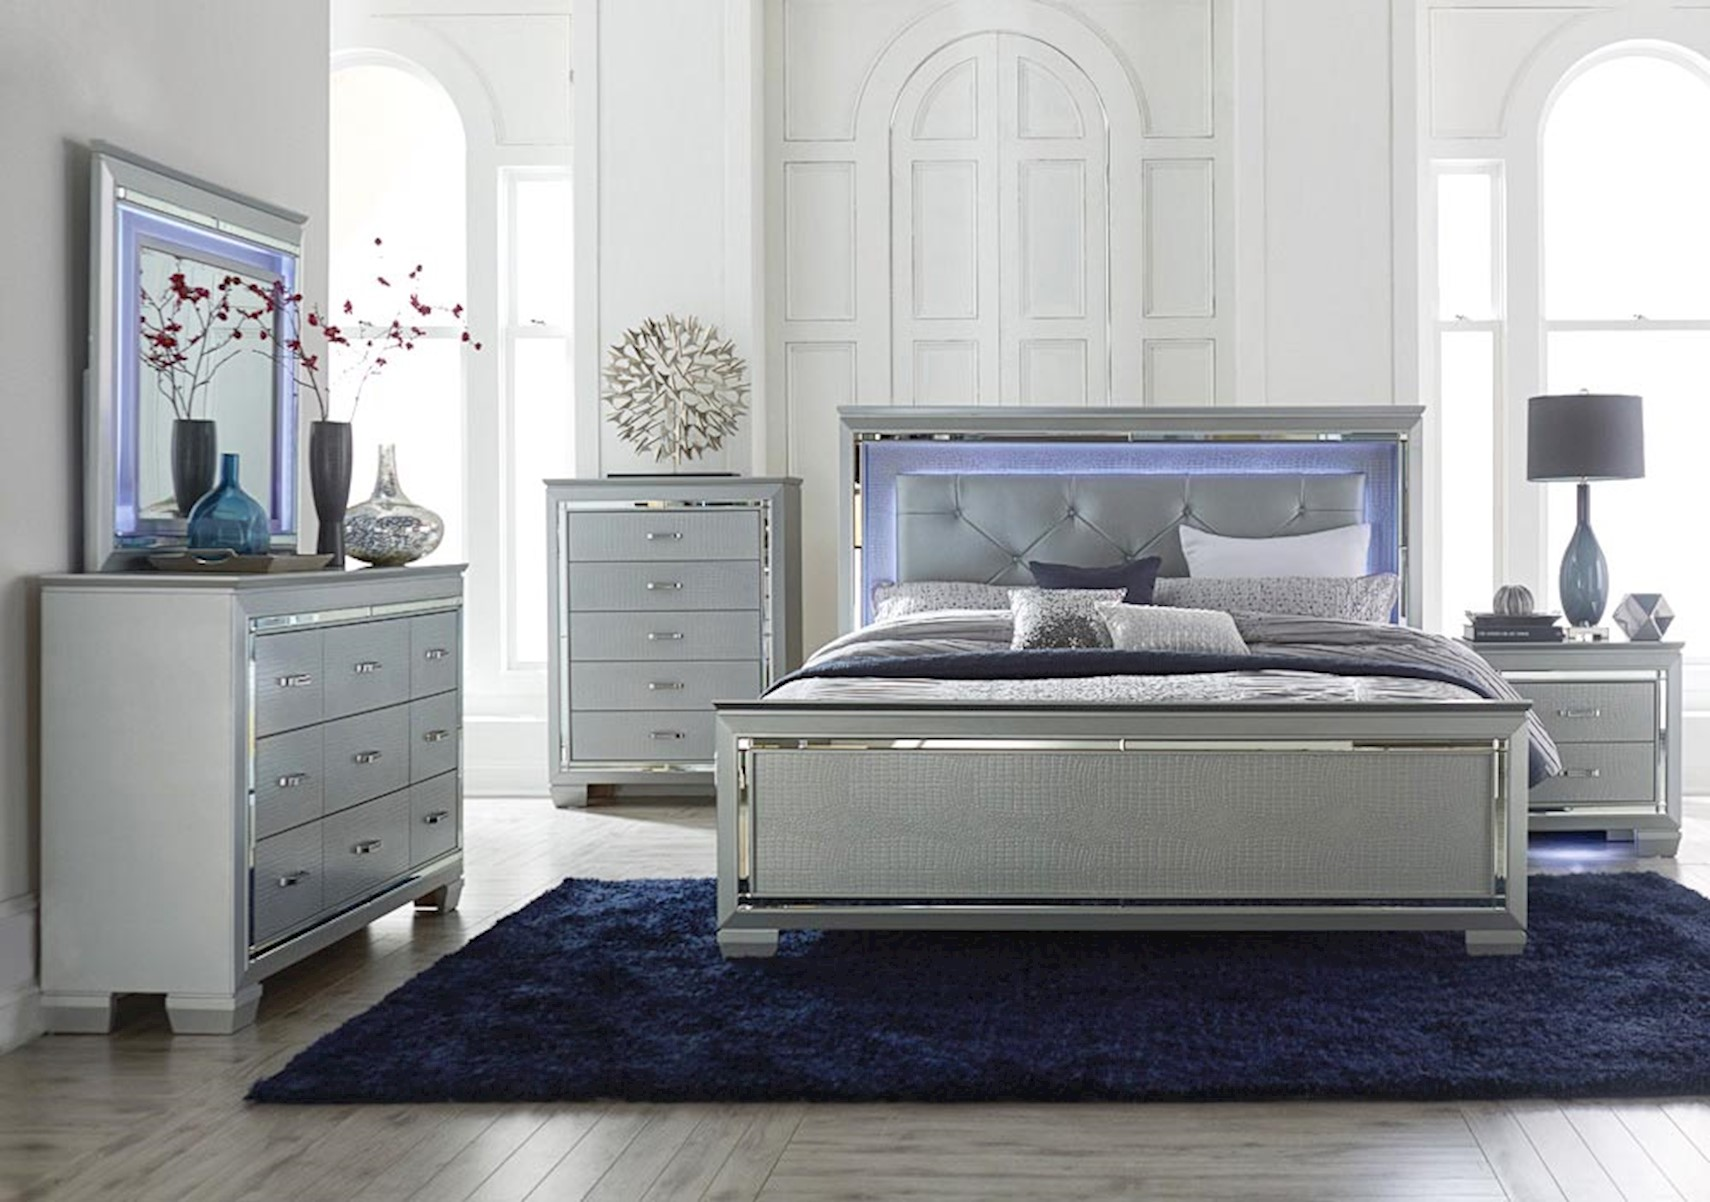 Picture of: Amazing Silver Bedroom Set Ideas